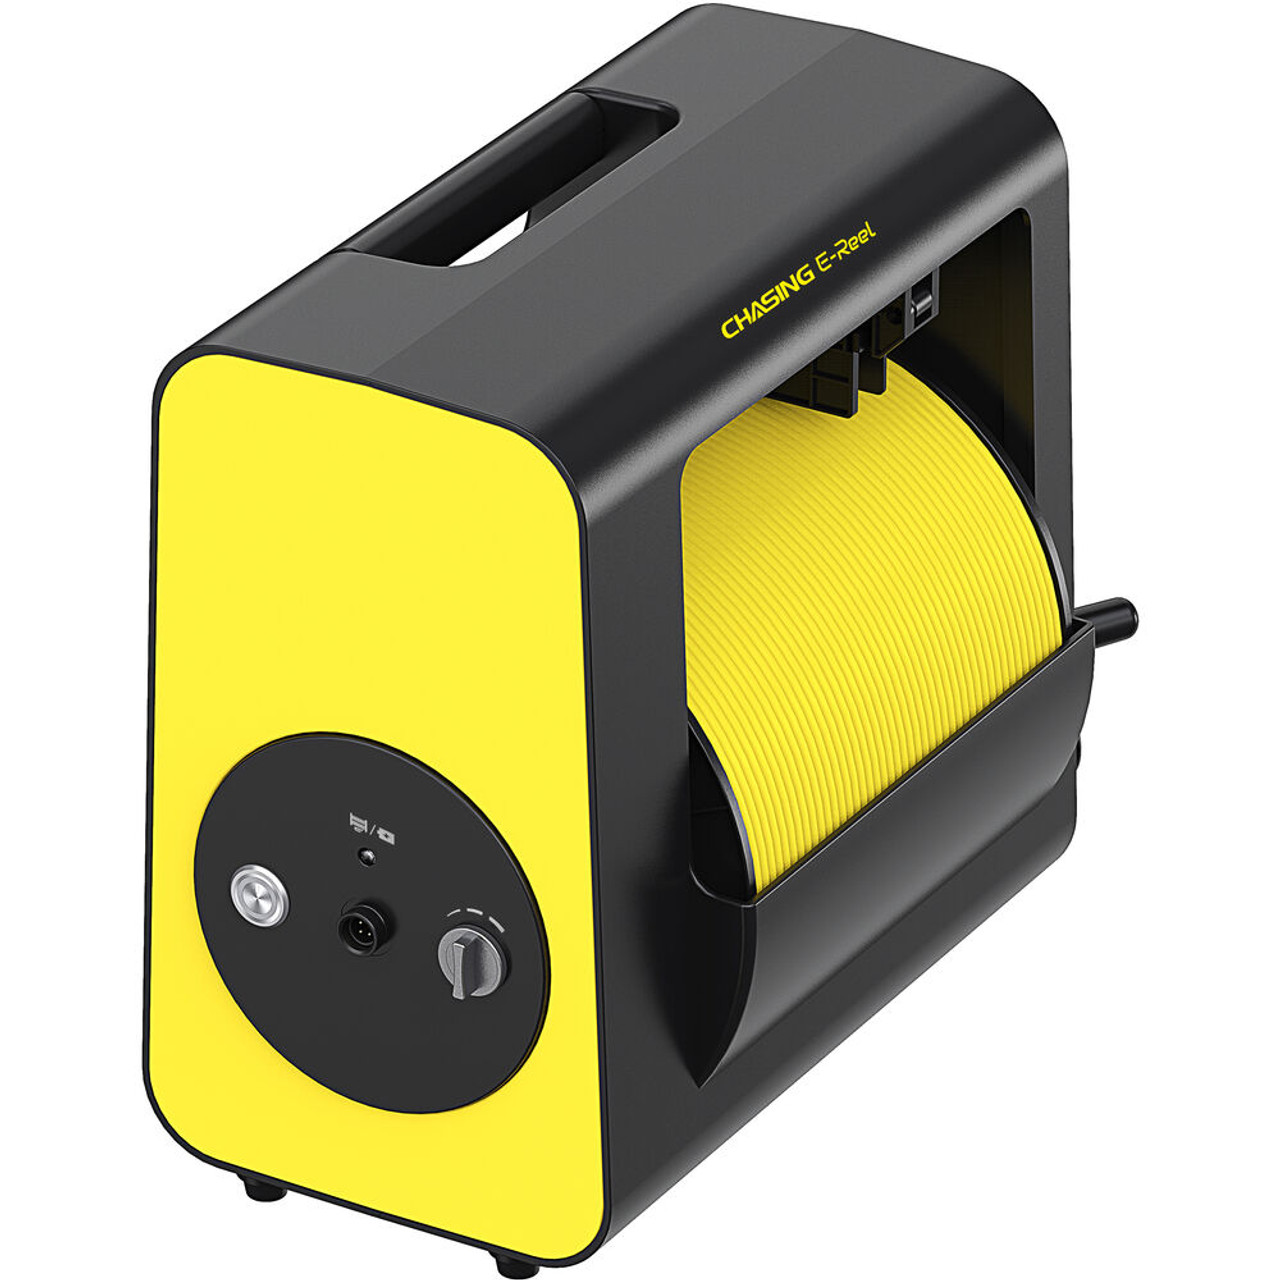 Chasing E-Reel Rechargeable Electronic Winder